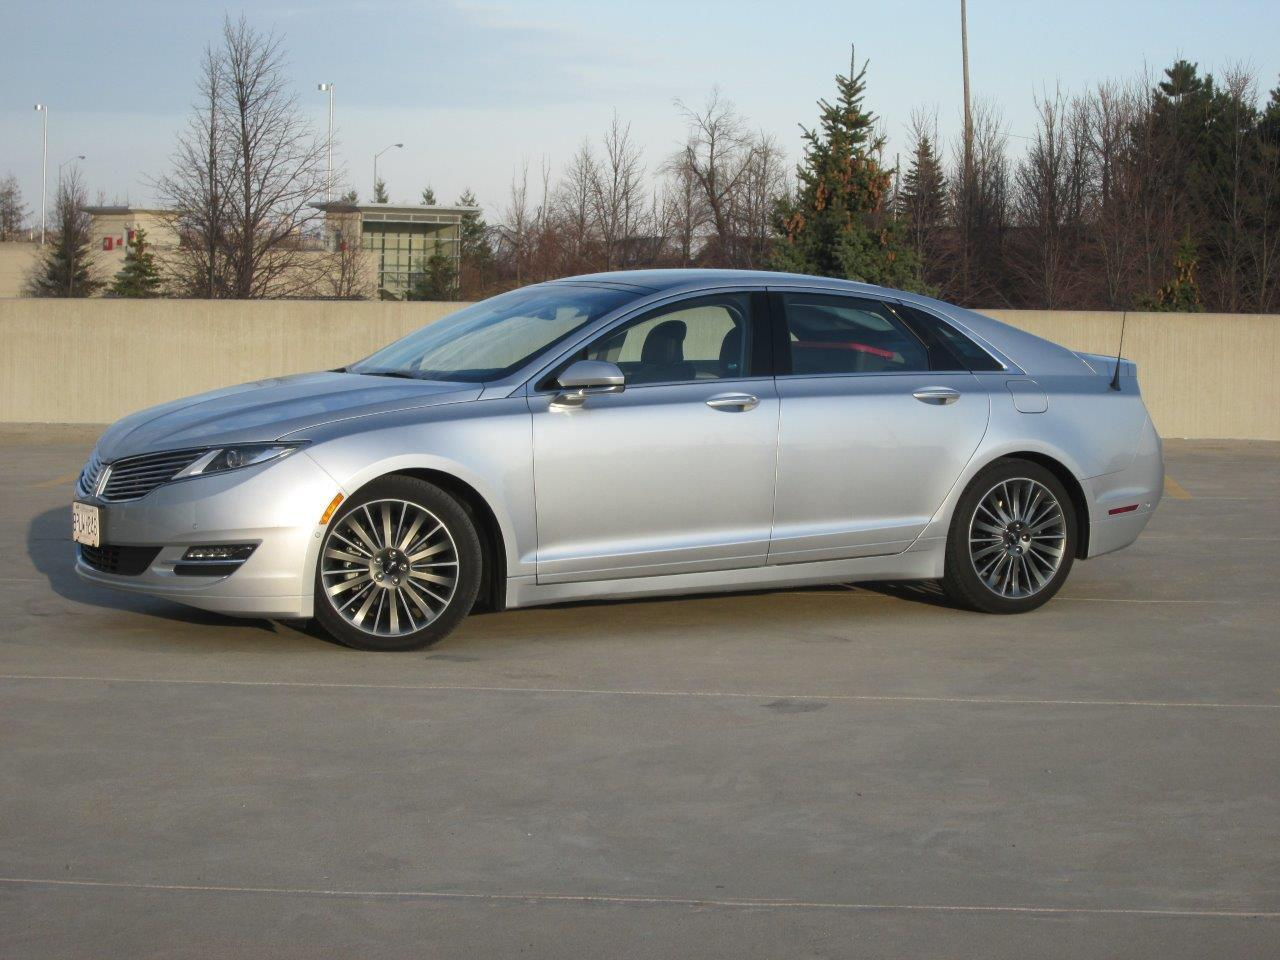 2014 lincoln mkz reviews pictures and prices us news autos post. Black Bedroom Furniture Sets. Home Design Ideas